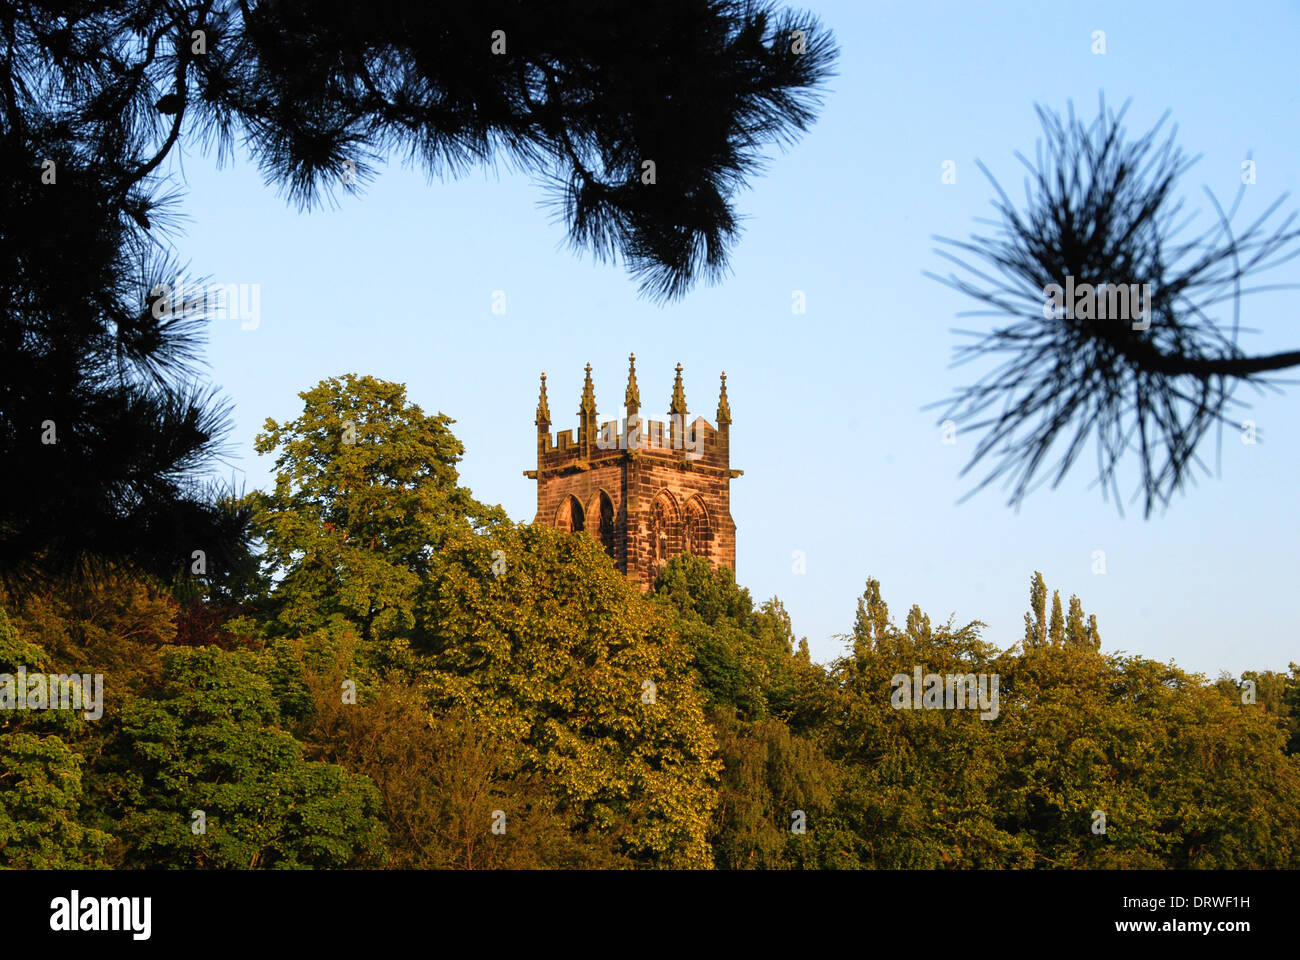 Bell tower of St Mary's Church, Lymm, over the trees - Stock Image